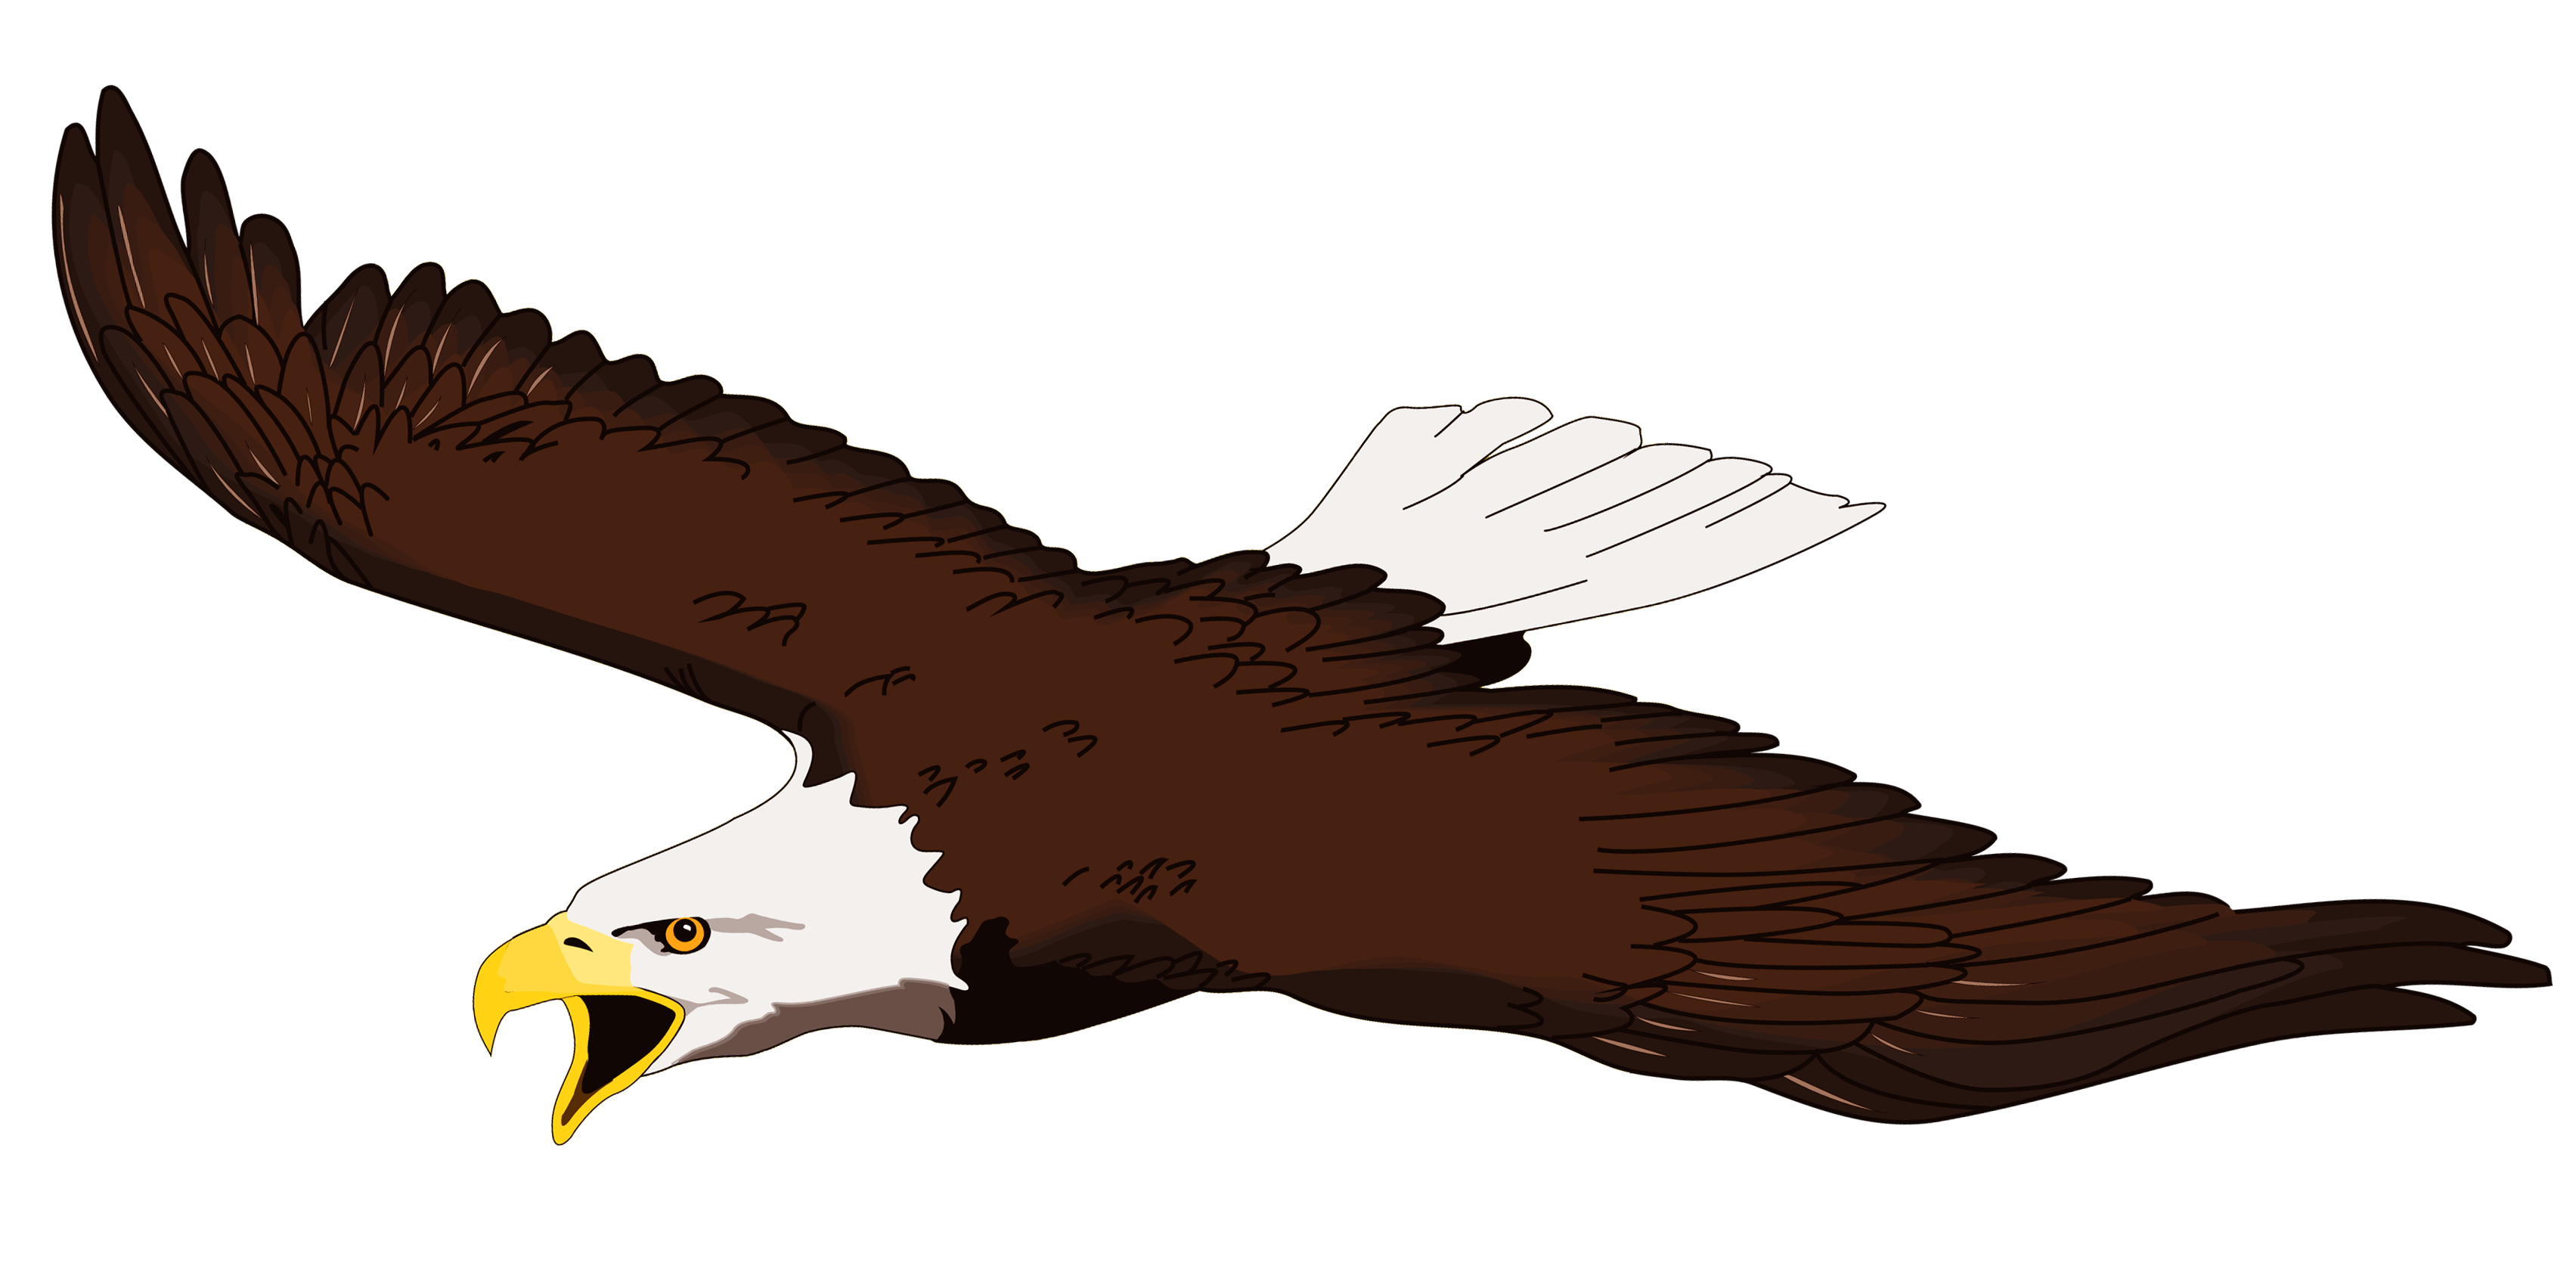 Eagle soaring. Images for clip art